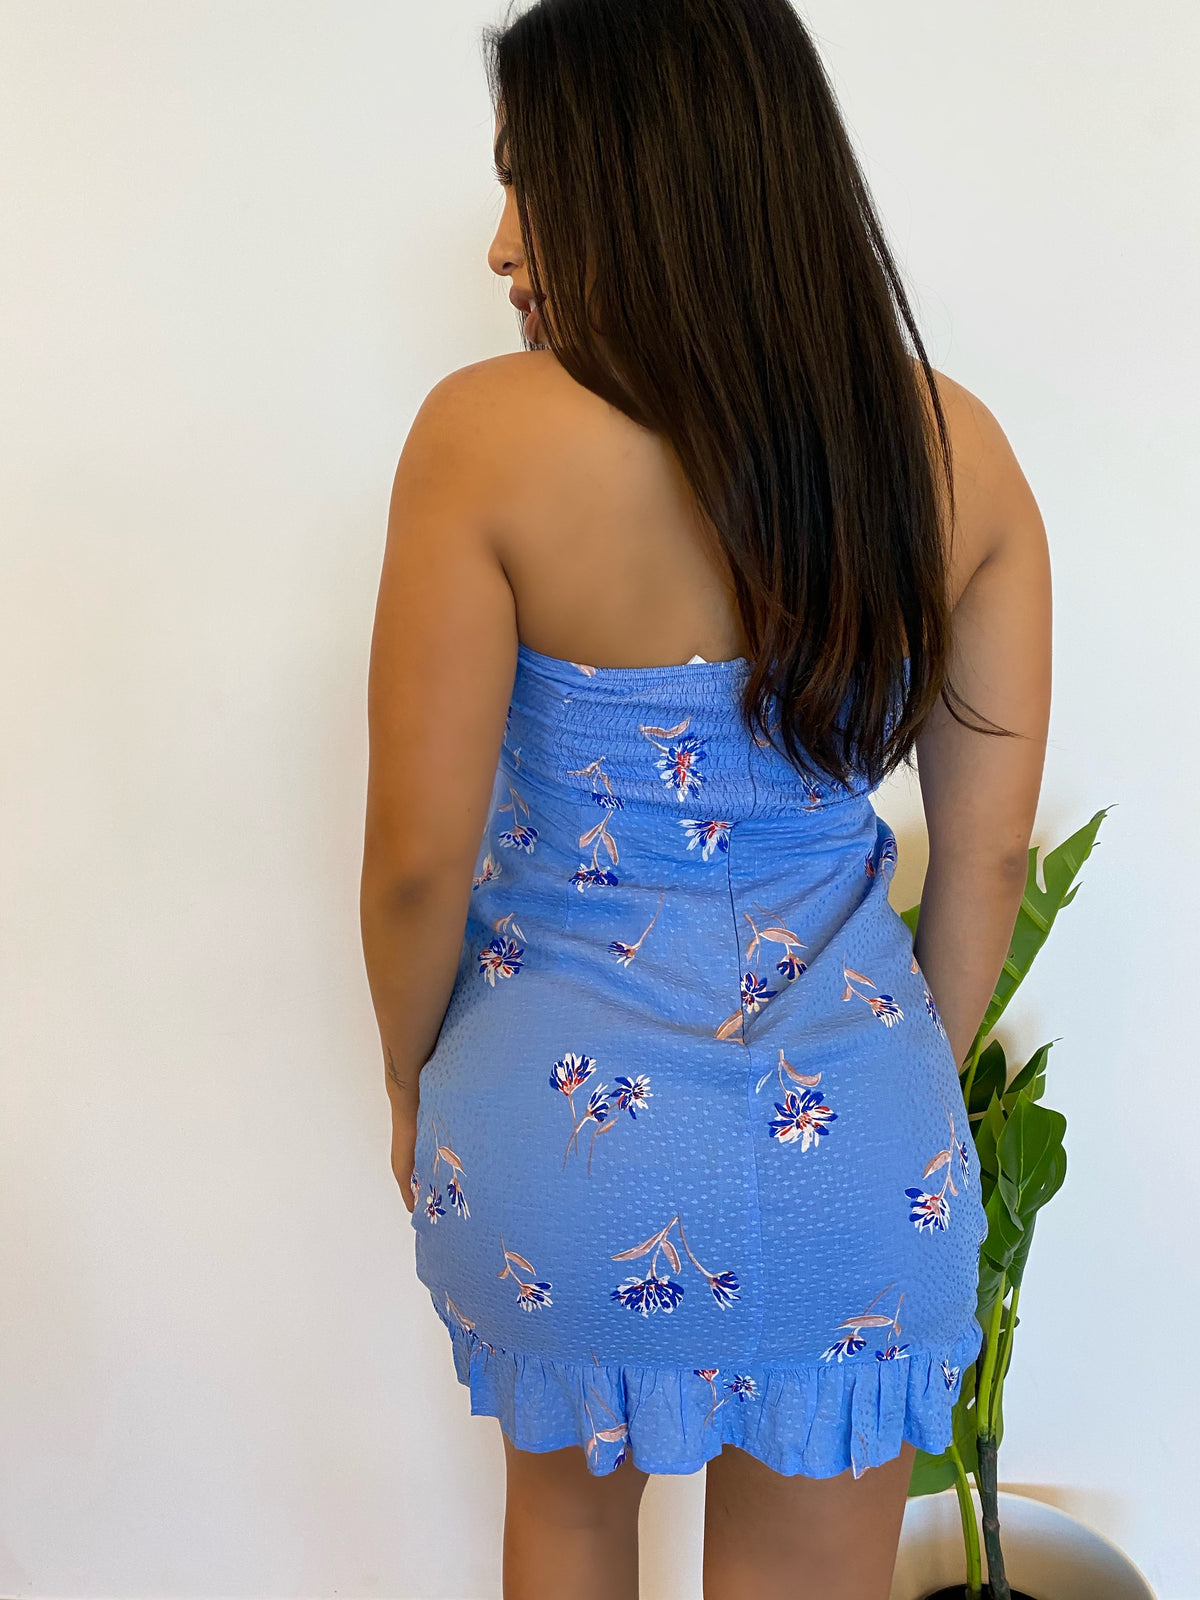 blue floral dress, strapless, open cut out, self tie, ruffle bottom